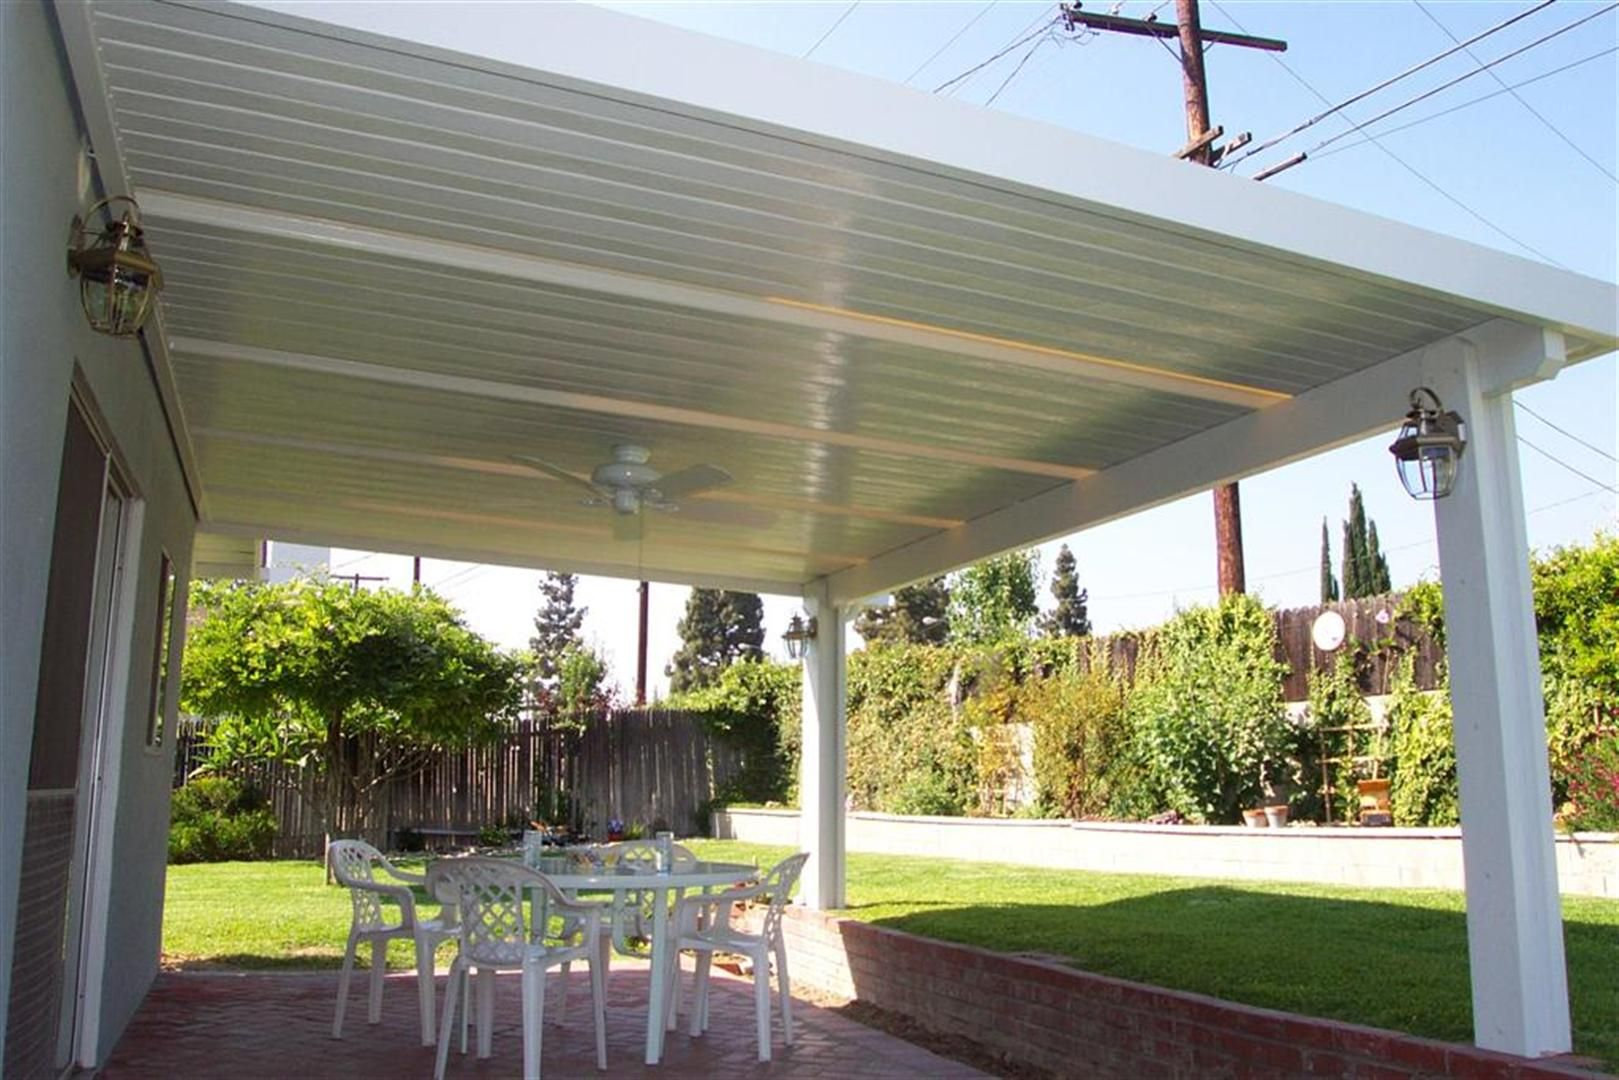 Elegant Patios Covers Pictures Gallery | San Juan Capistrano Patio Covers